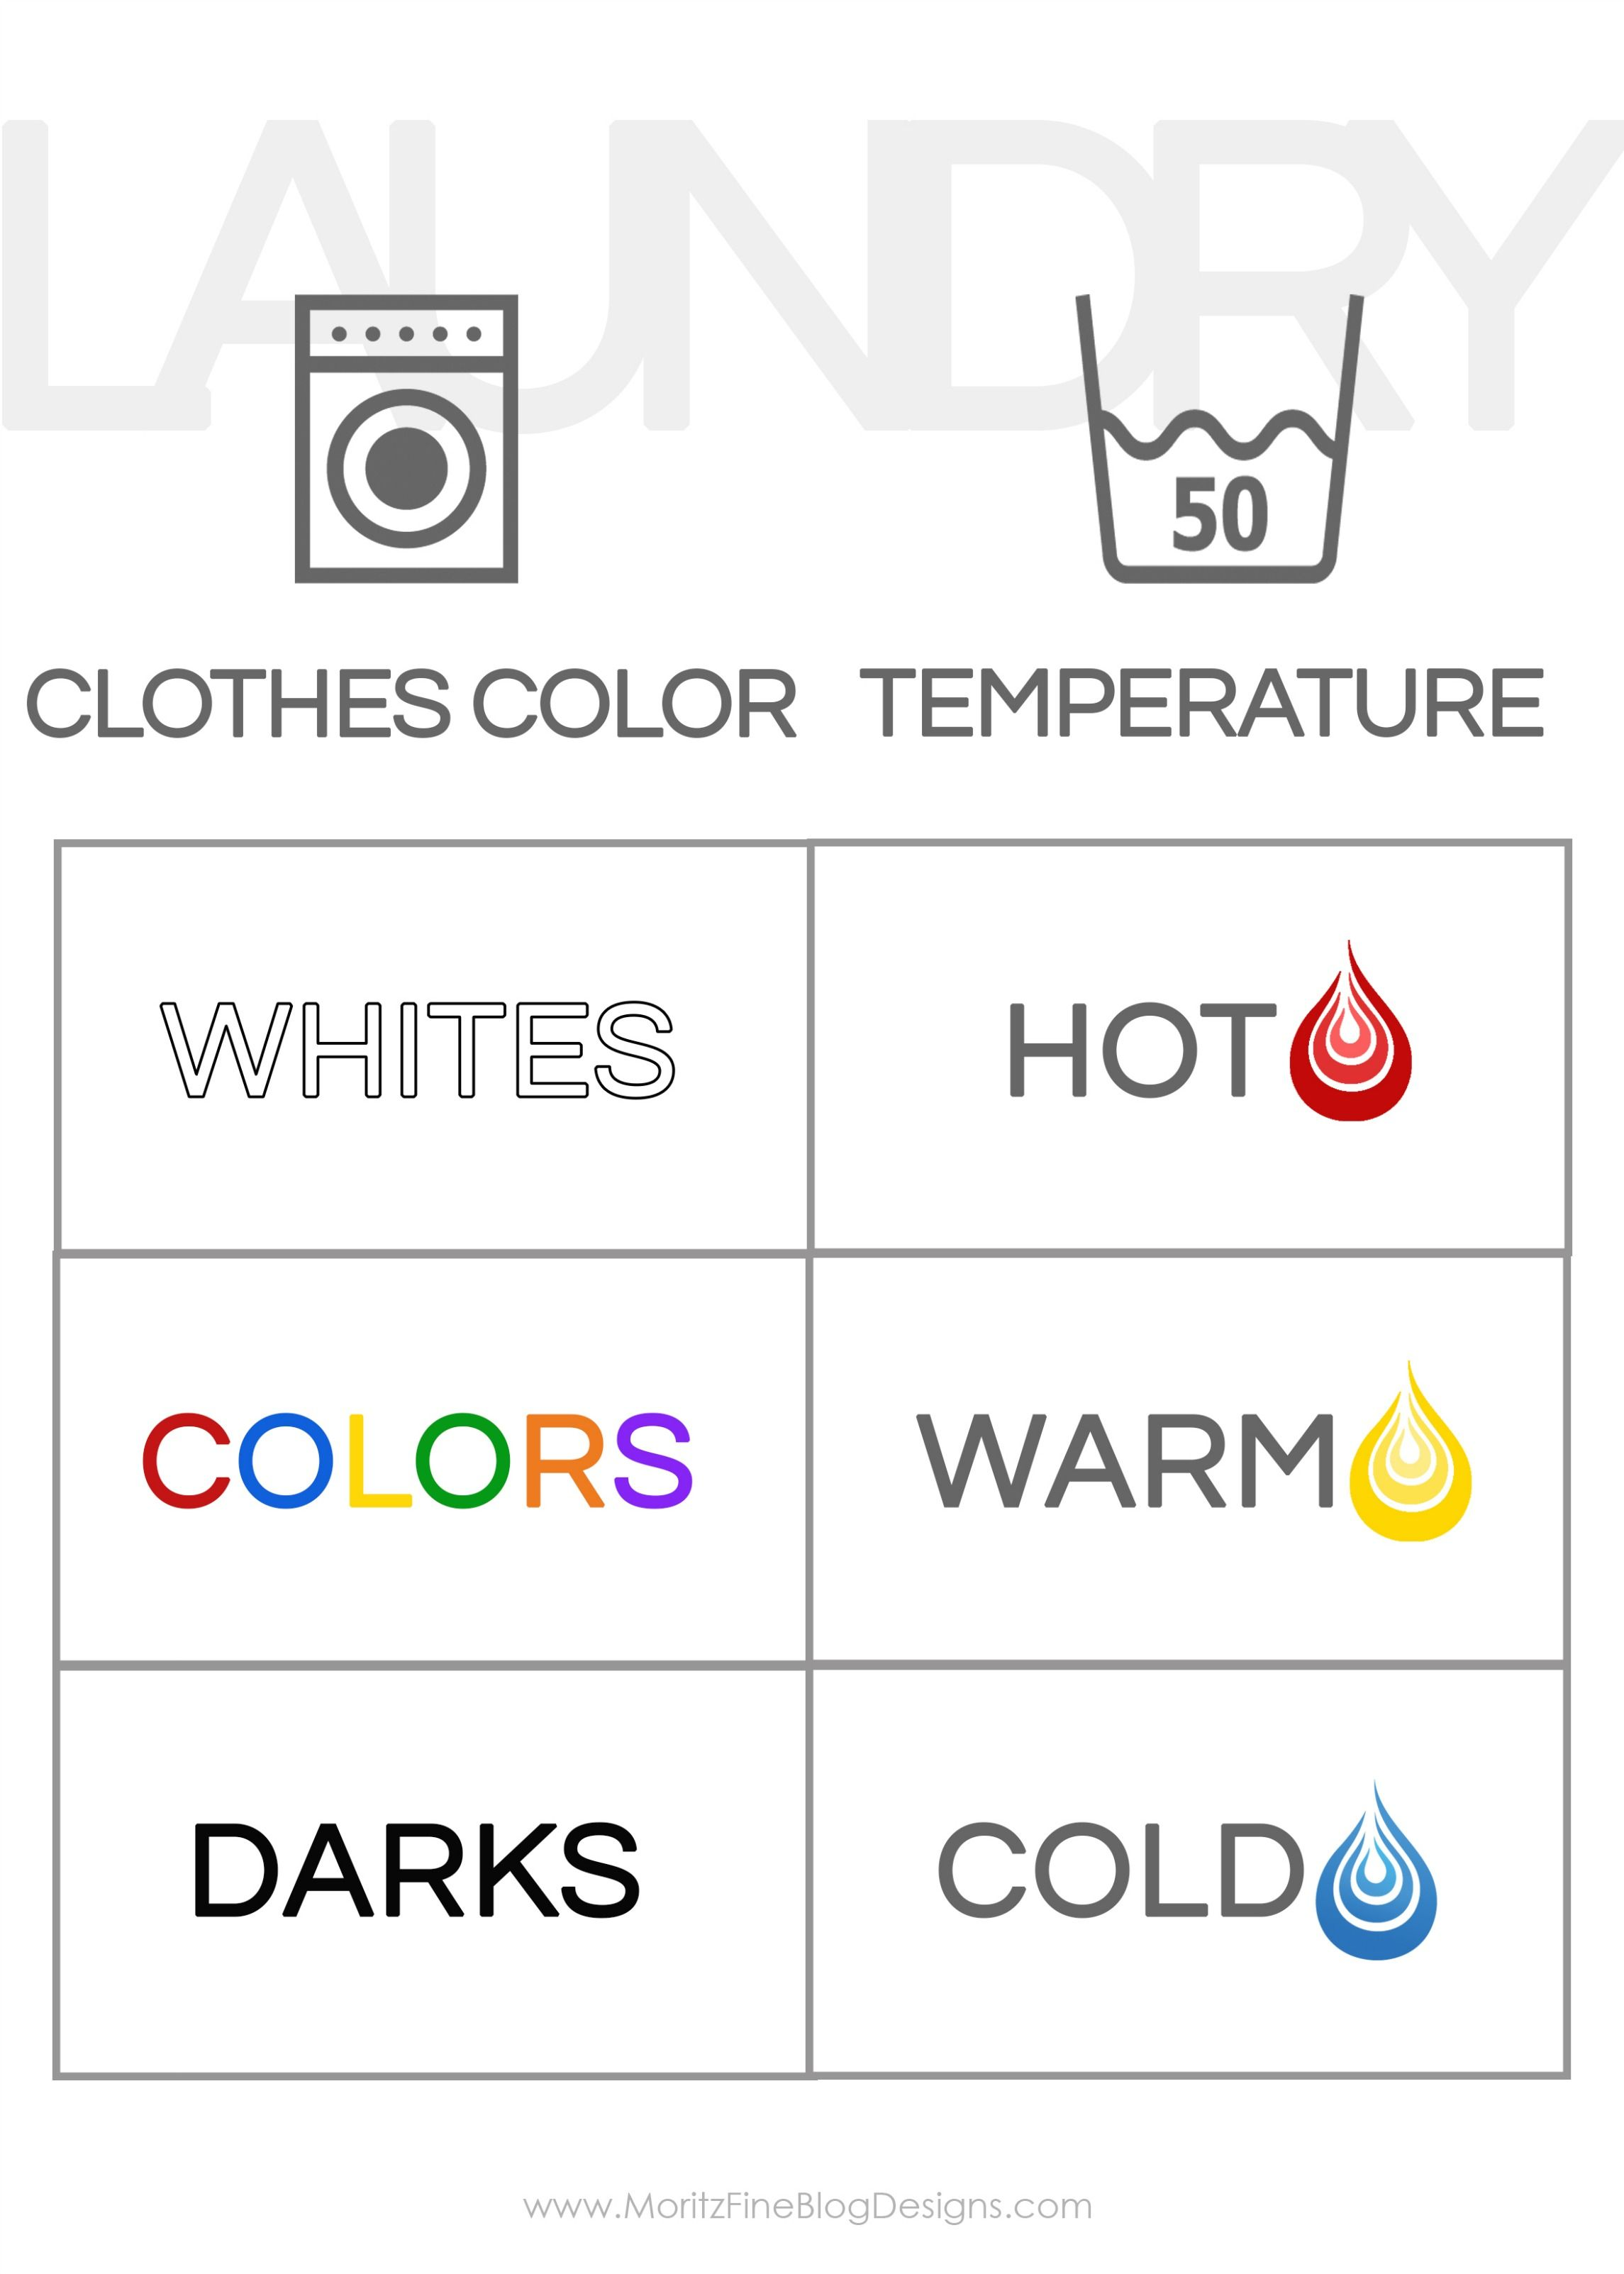 Do You Kids Need To Learn How Laundry Hang This Handy Free Printable In The Room So They Can Remember What Settings Use On Washing